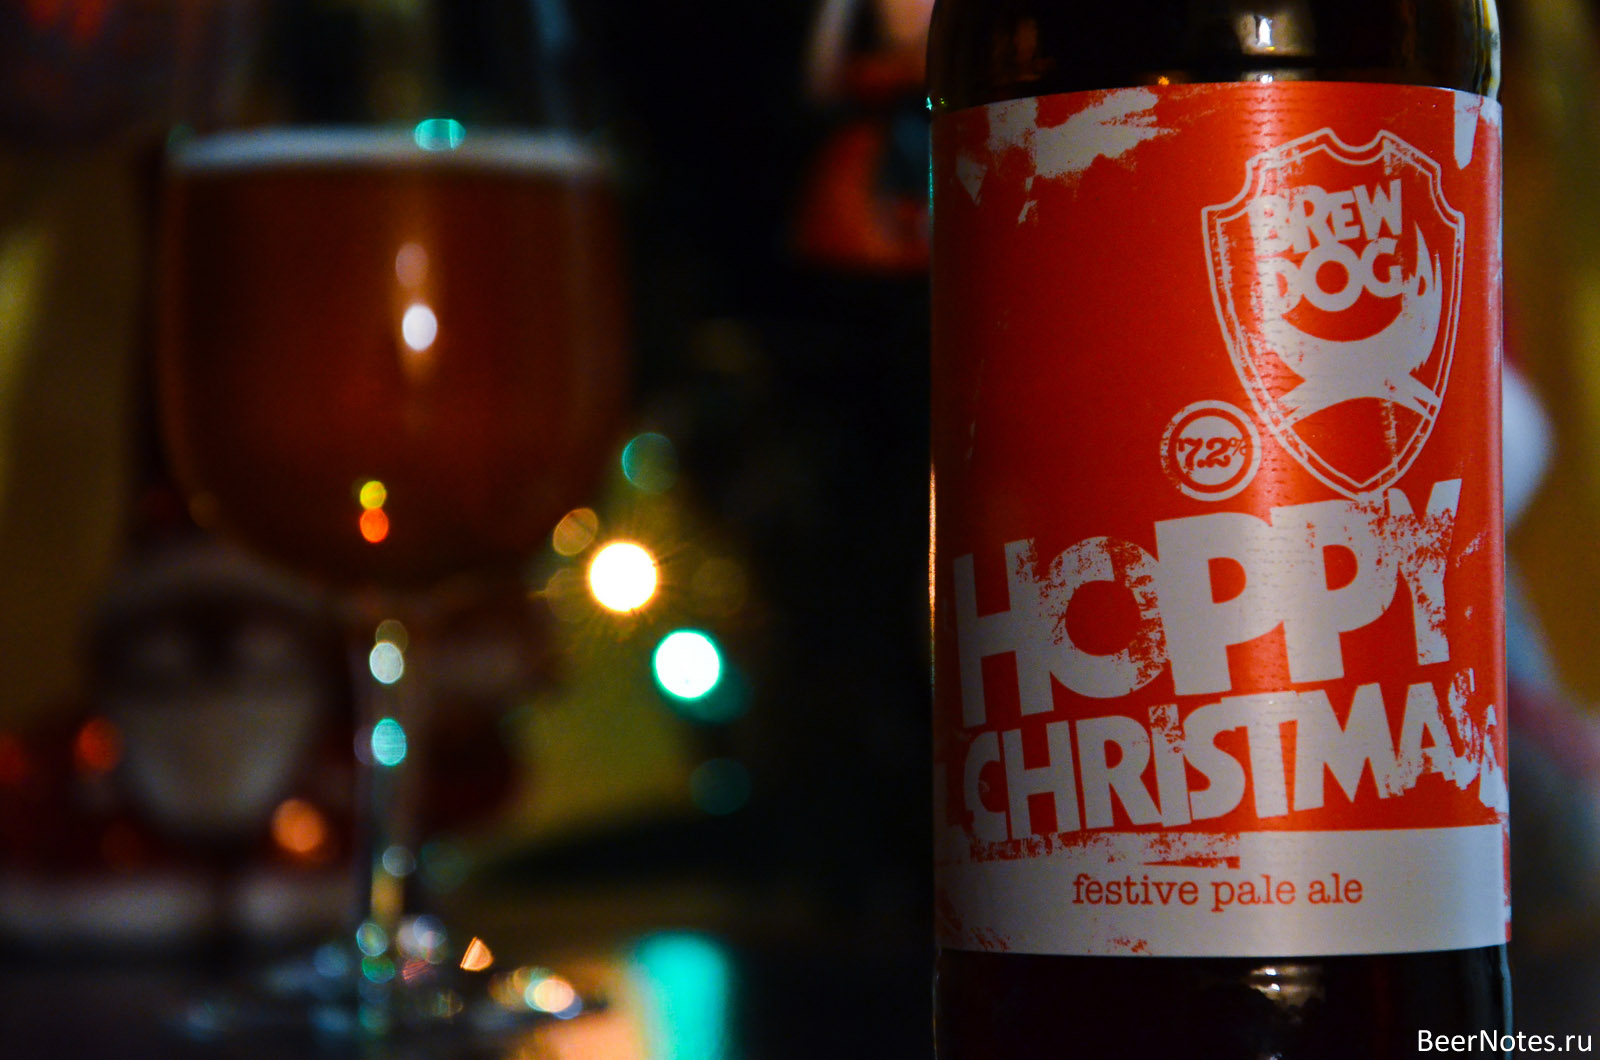 BrewDog Hoppy Christmas4